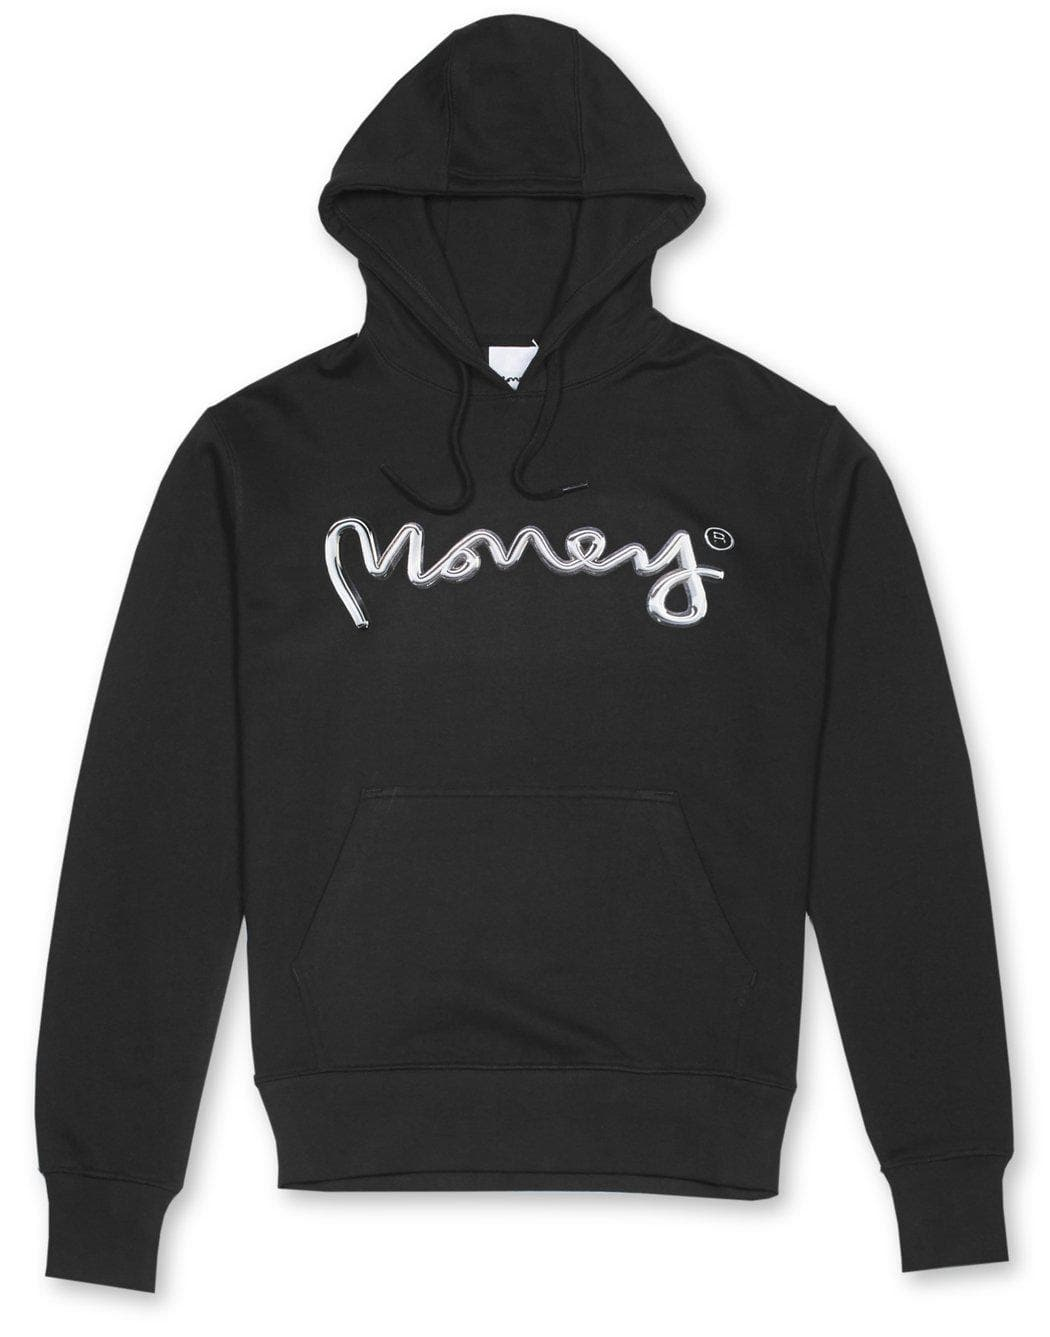 Money Clothing hoody with chrome artwork details in black